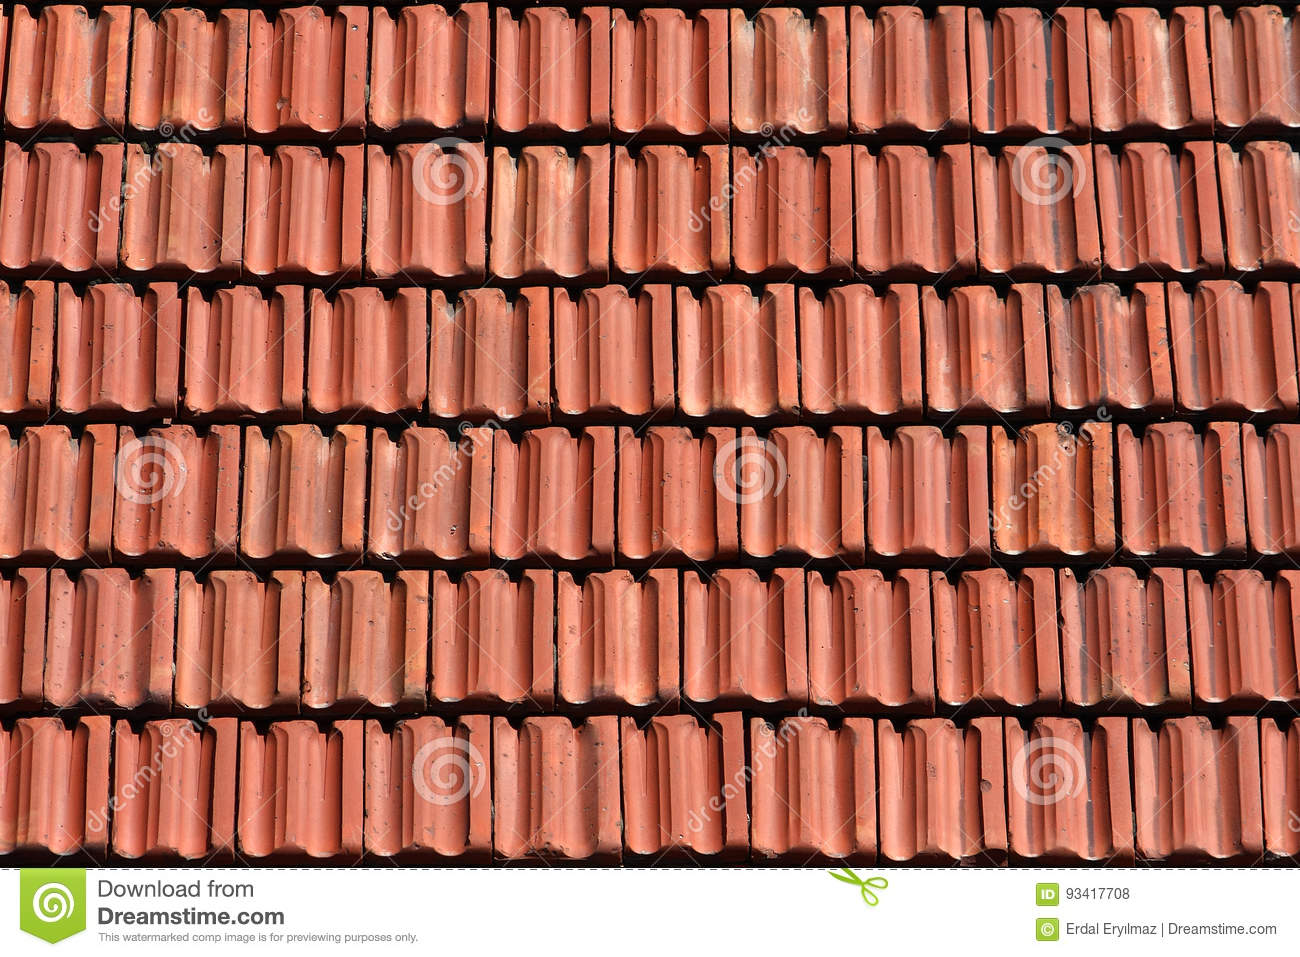 Brick Roof Texture roof tiles texture stock photo. image of recently, cover - 93417708